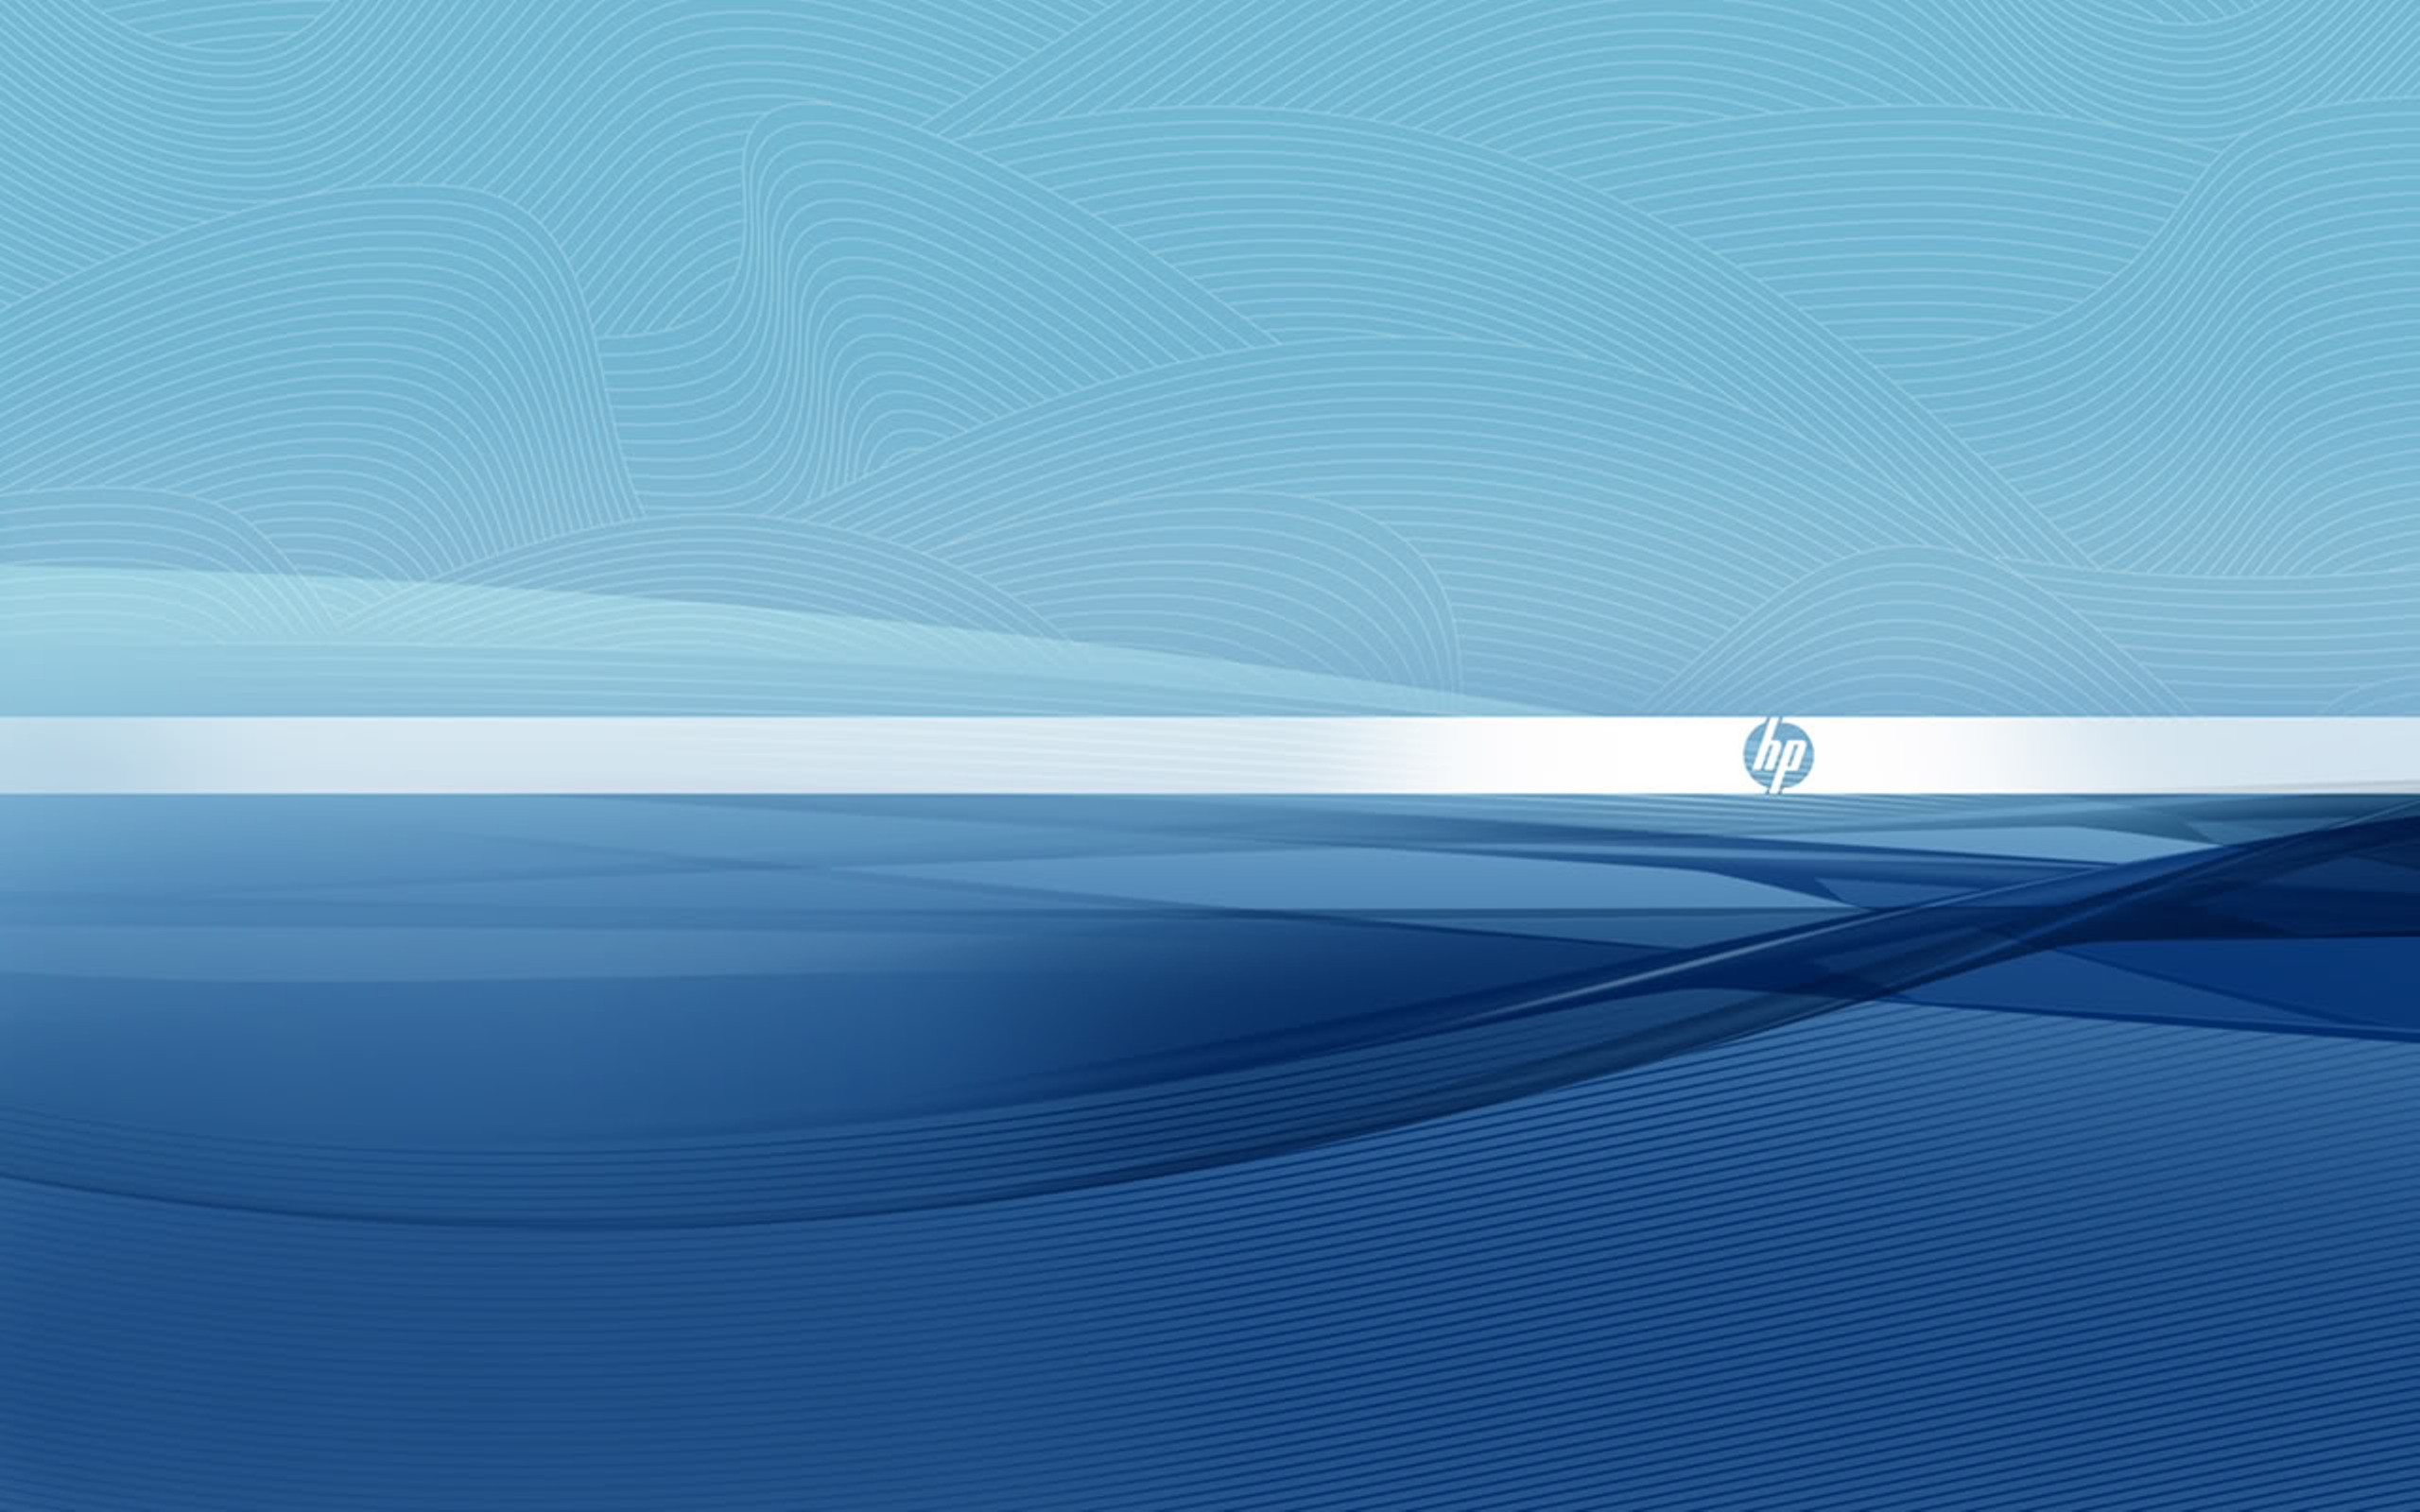 Clean your HP wallpaper